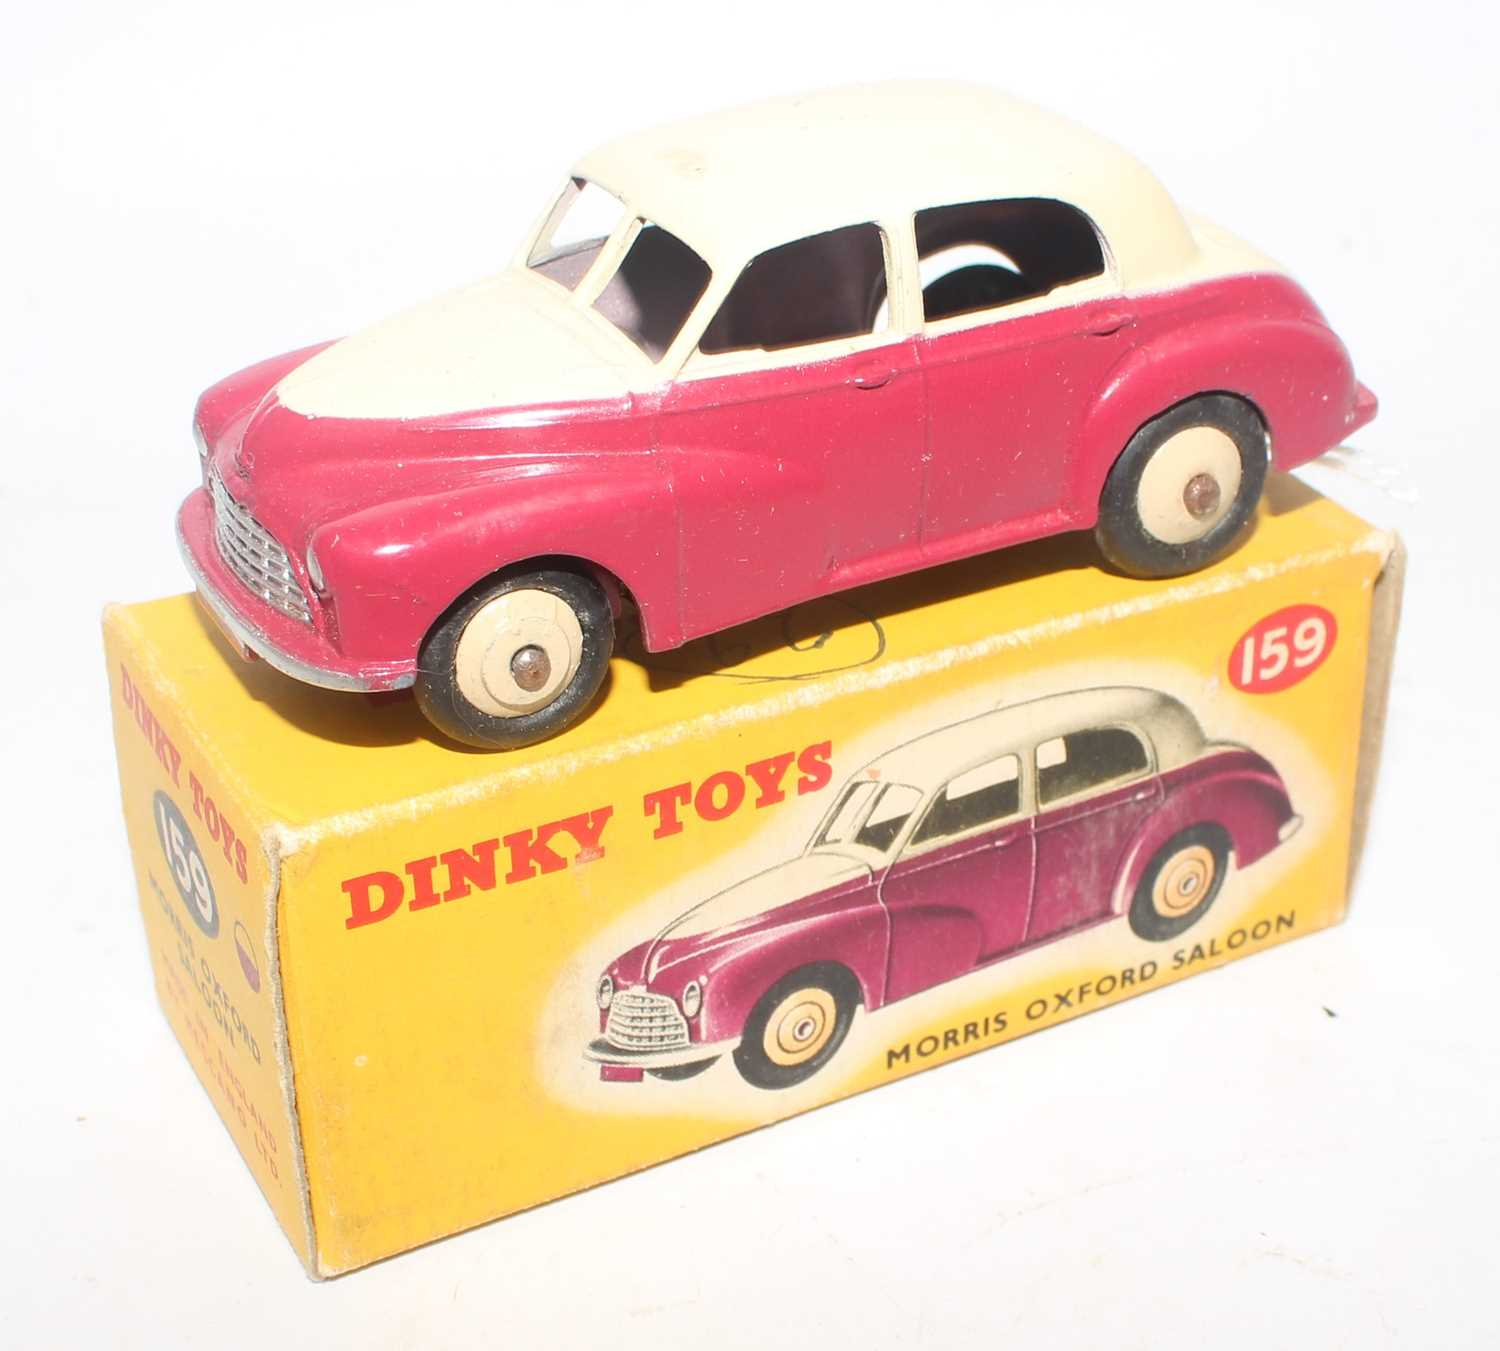 Dinky Toys No. 159 Morris Oxford saloon comprising of cream upper body with cerise lower body and